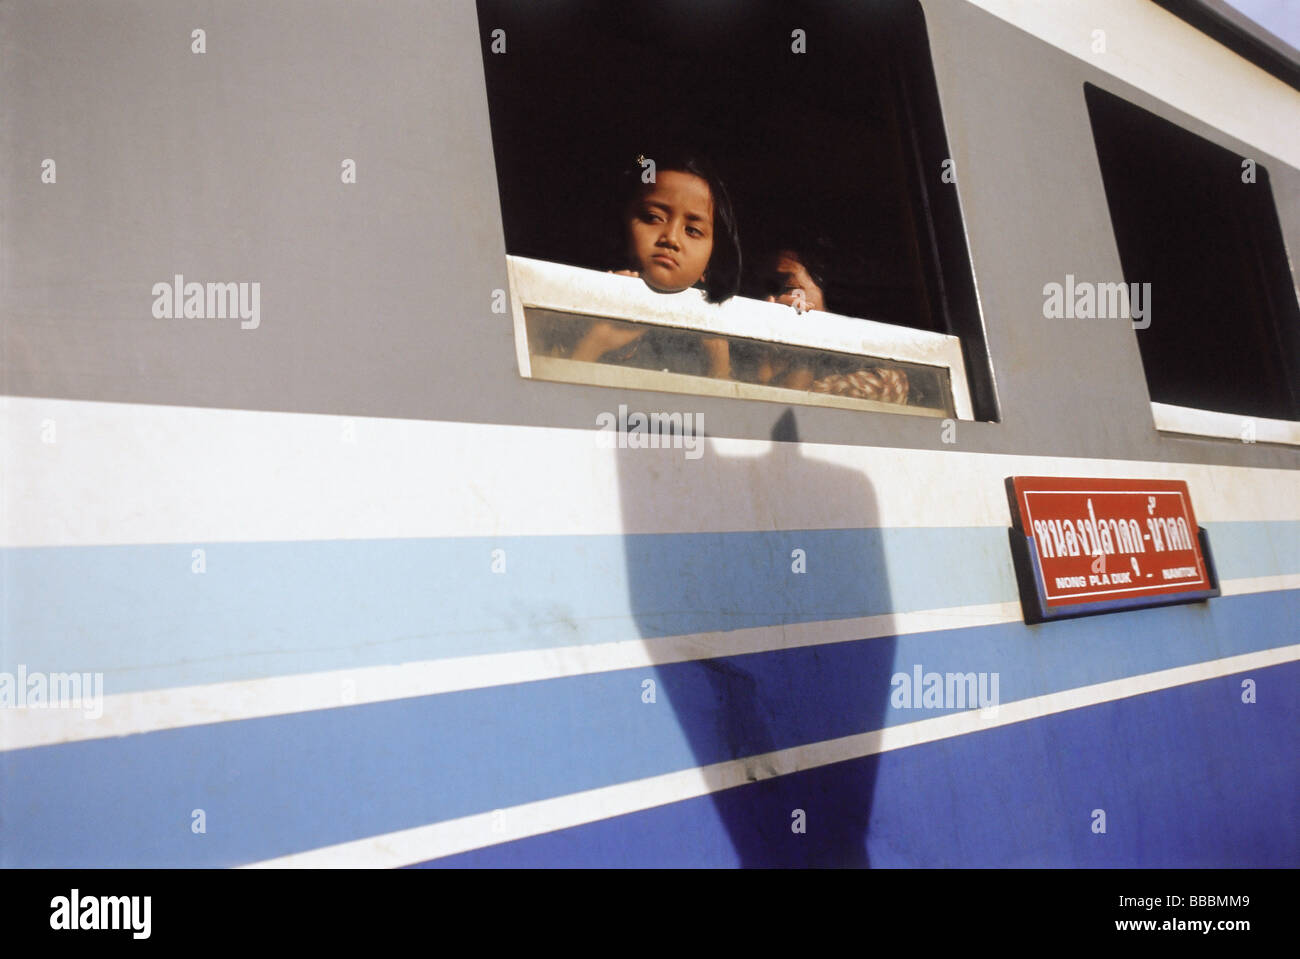 Thailand, Kanchanaburi, A young child peering out the window of a train on the Burma-Siam railway . - Stock Image